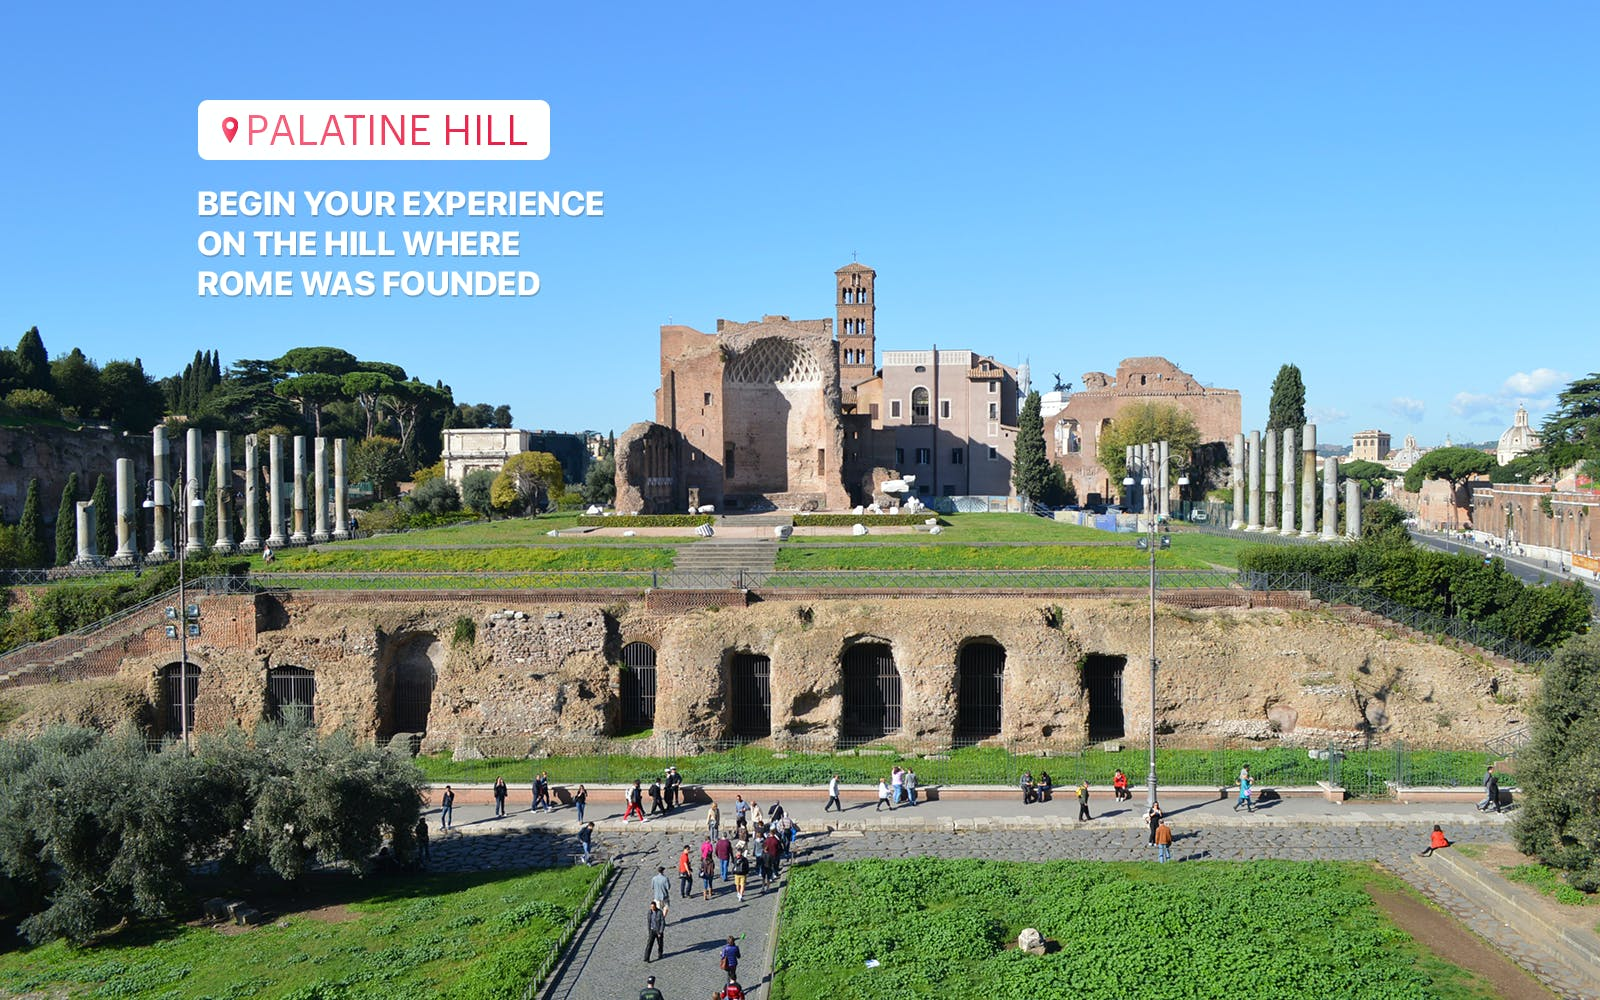 guided tour with skip the line access to colosseum, roman forum & palatine-5